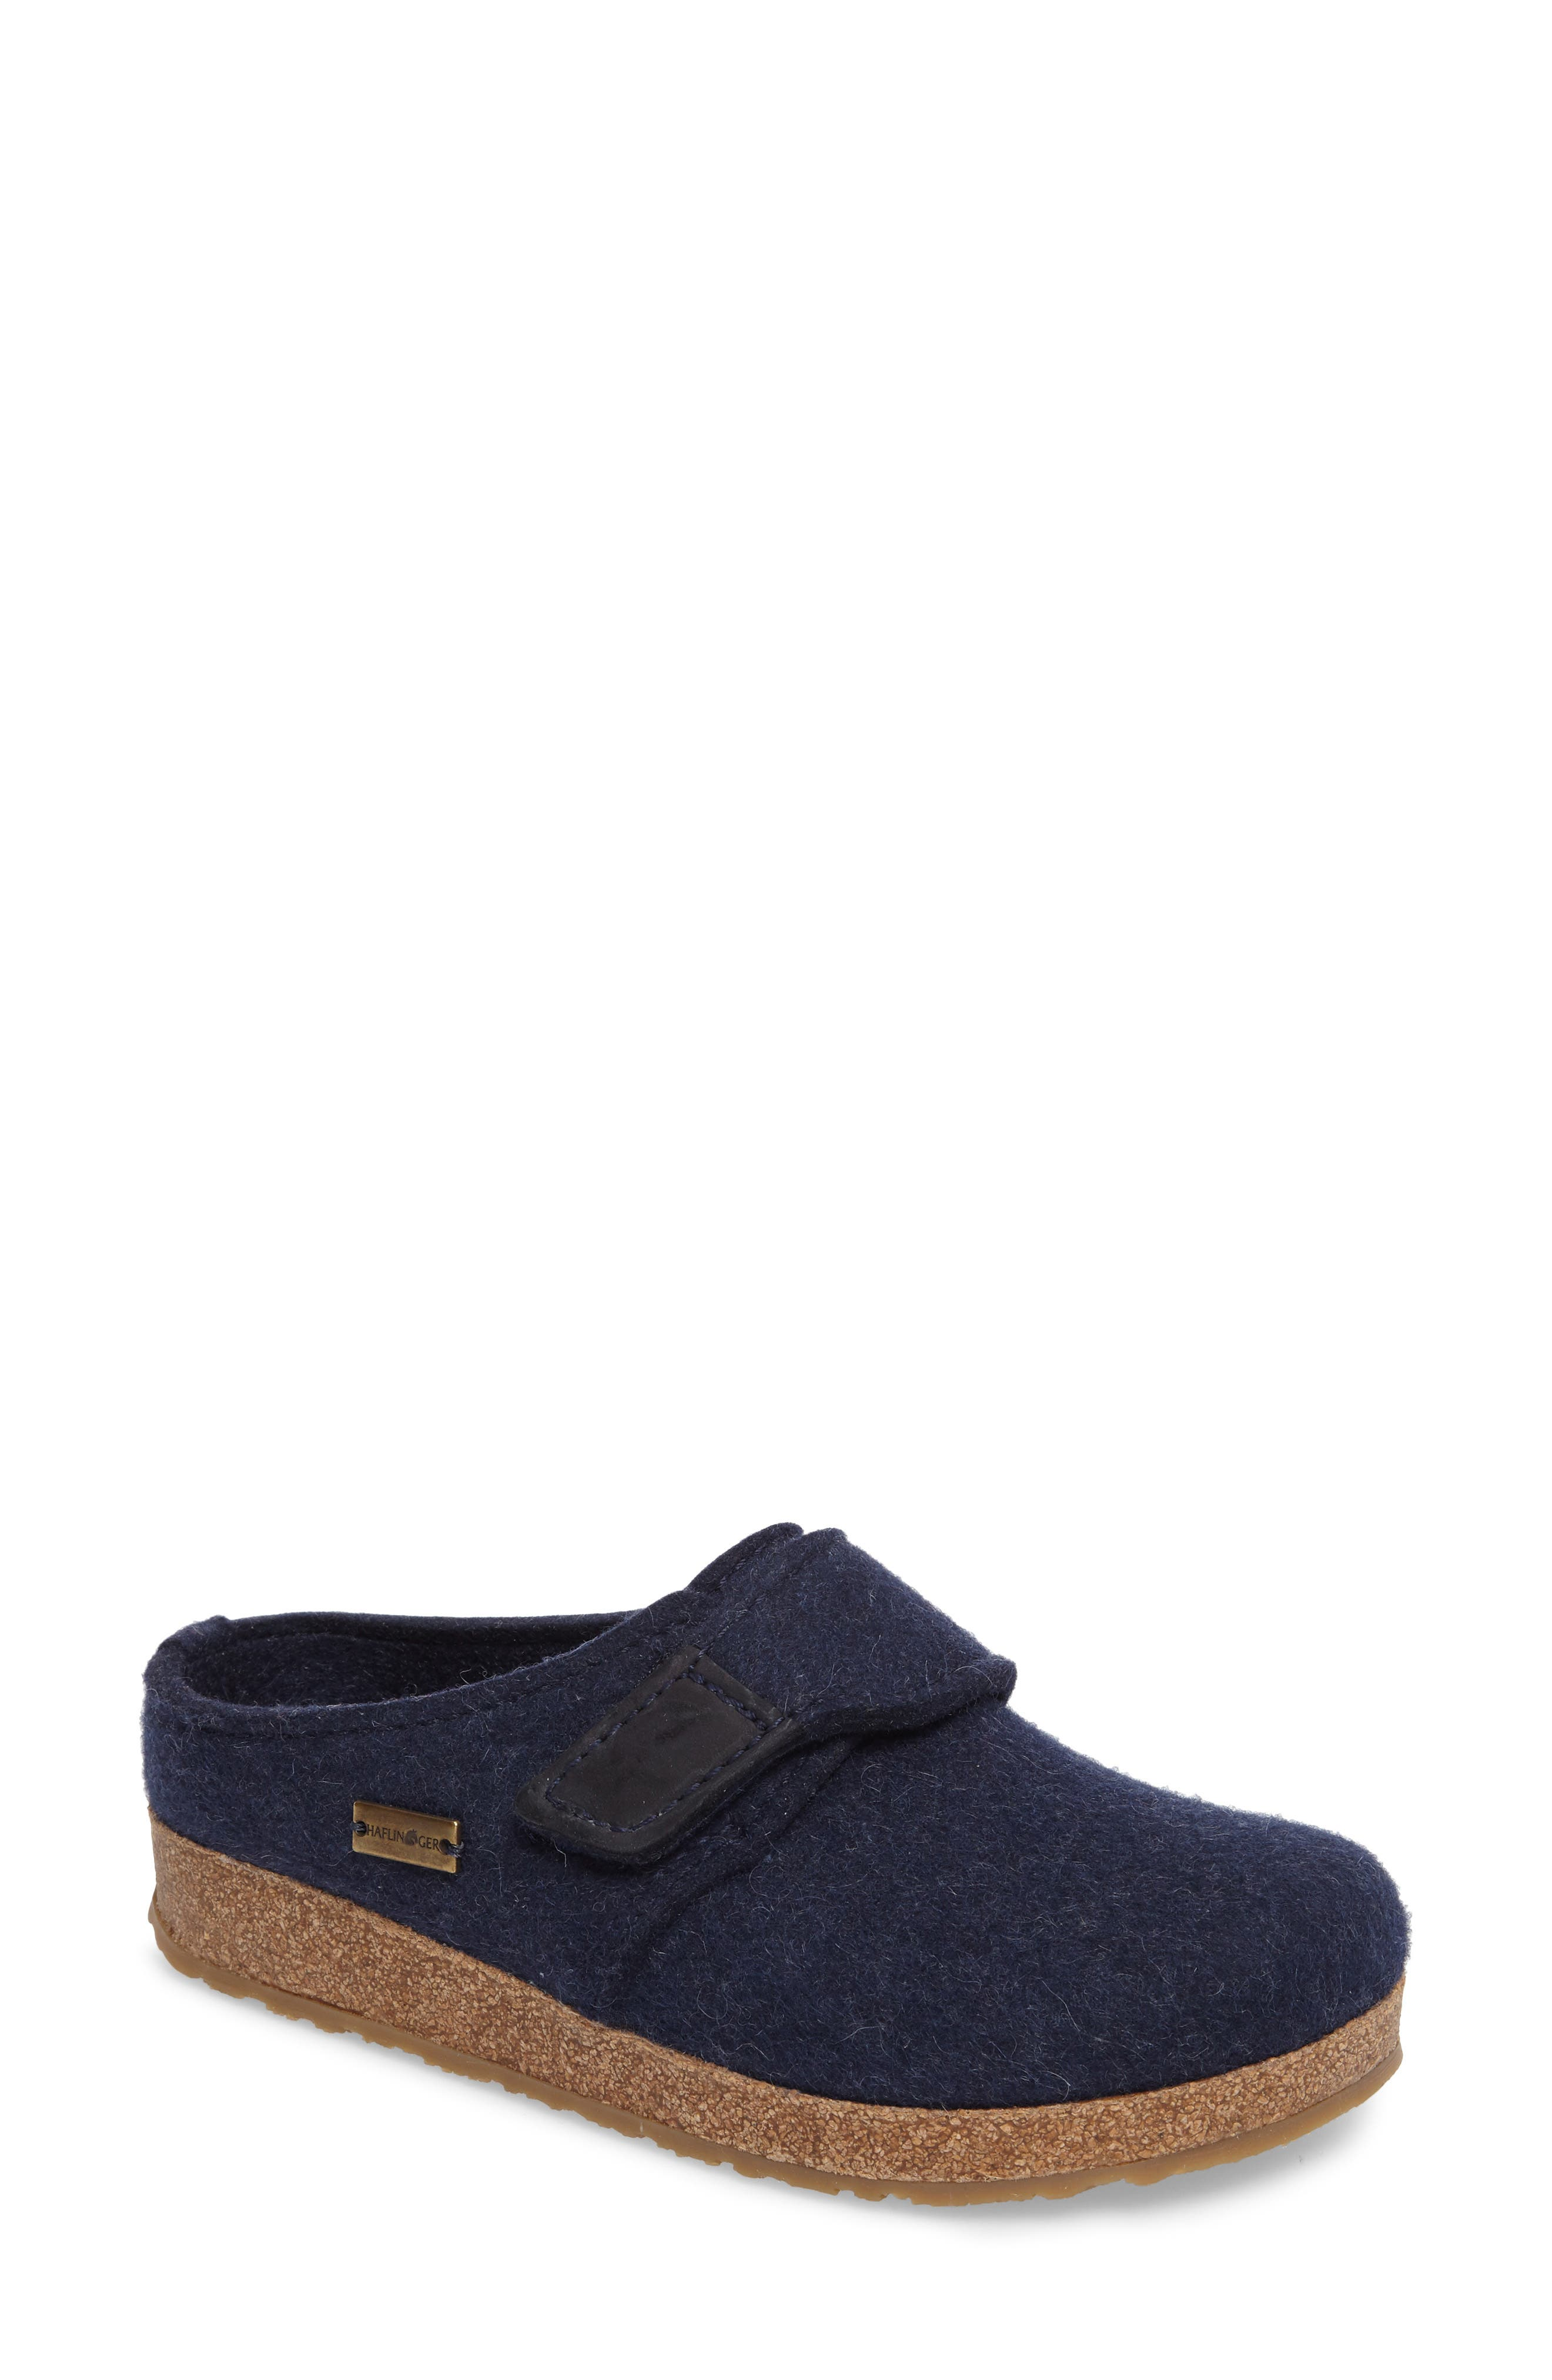 Grizzly Journey Clog Slipper,                             Main thumbnail 1, color,                             Captains Blue Wool